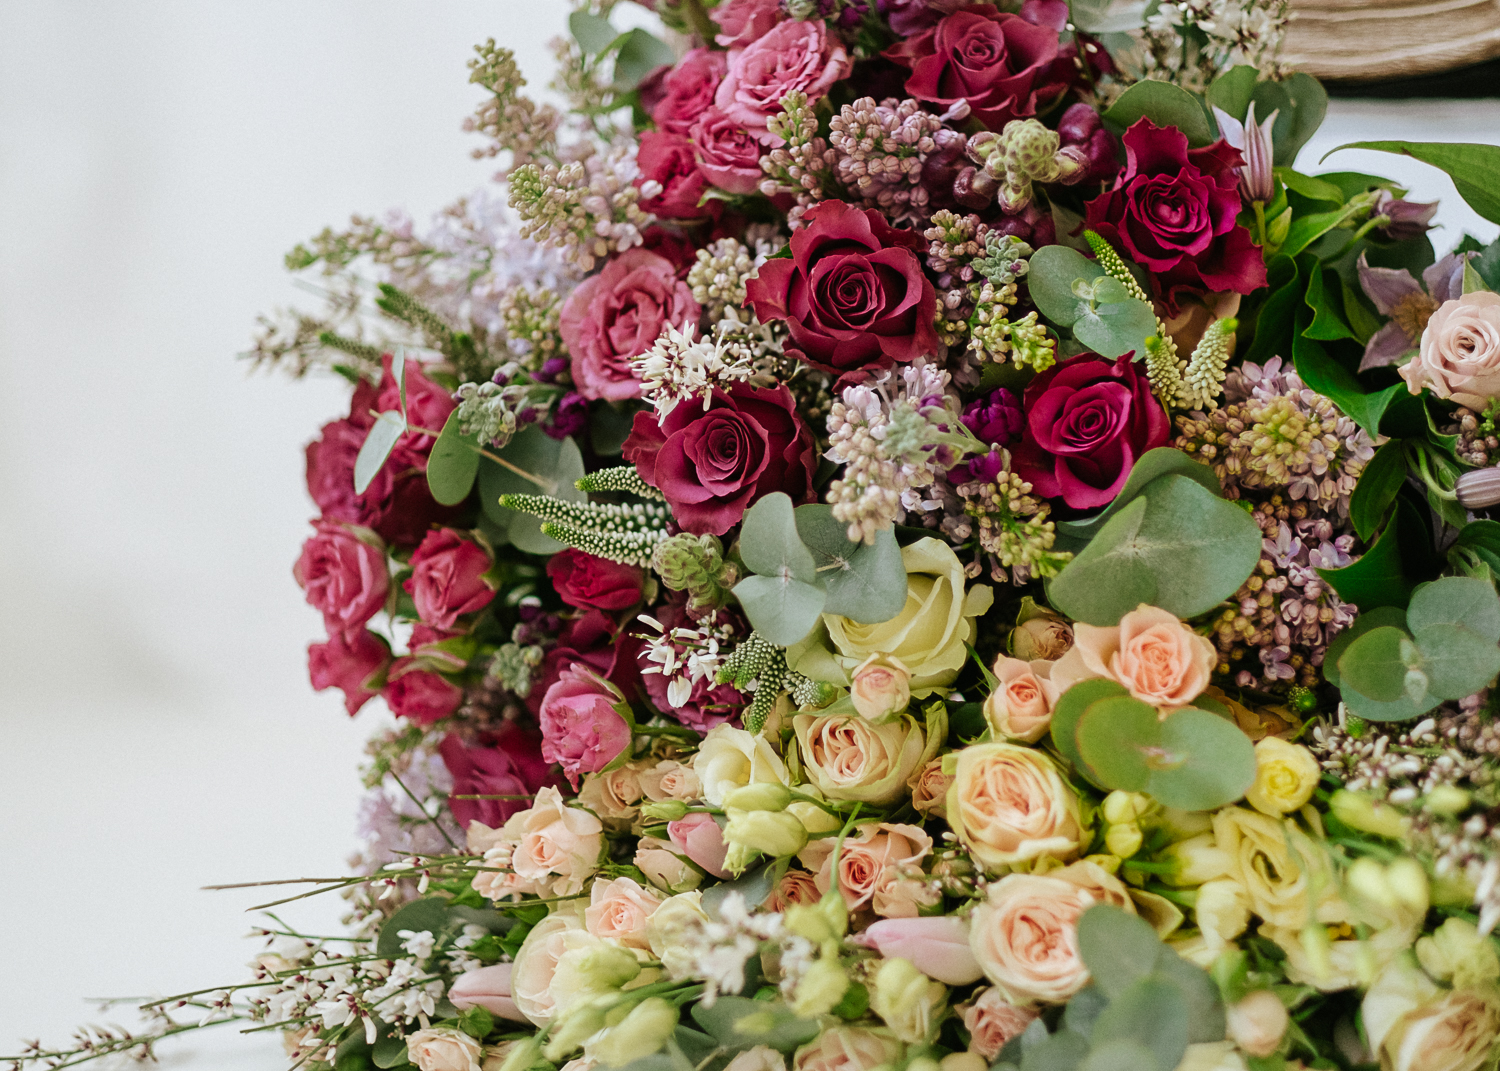 Daisy Lane Floral Design wedding flowers